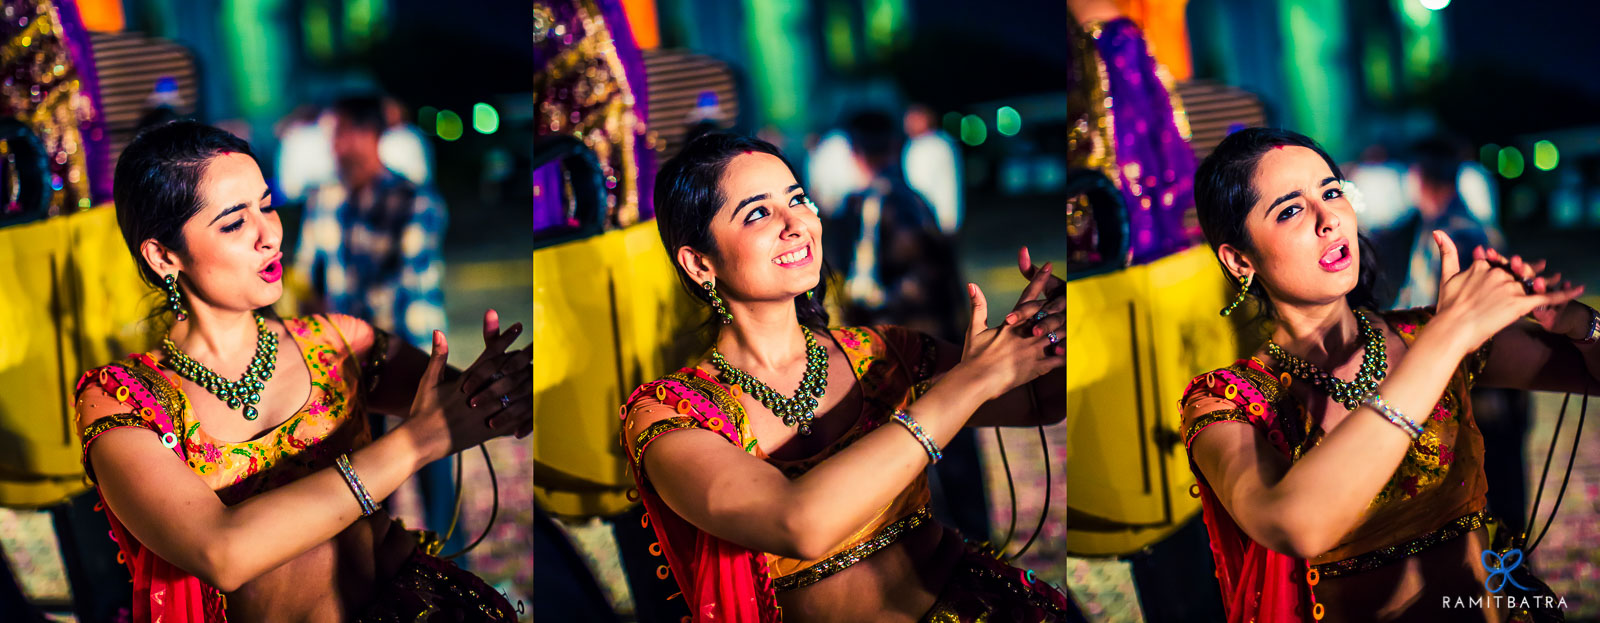 Wedding-Photographer-Hyderabad-India-RamitBatra_48